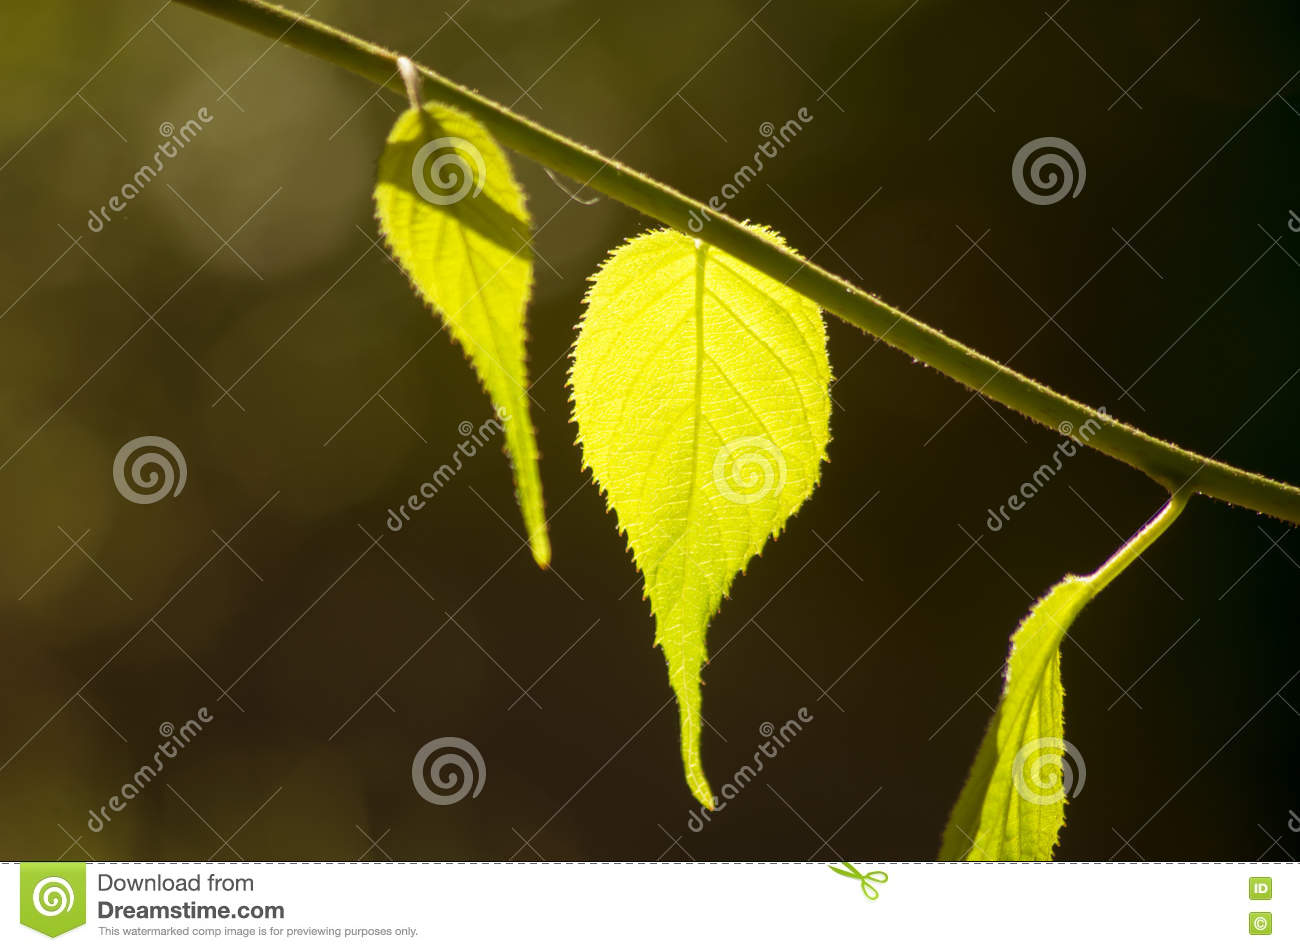 Green leaf on a branch